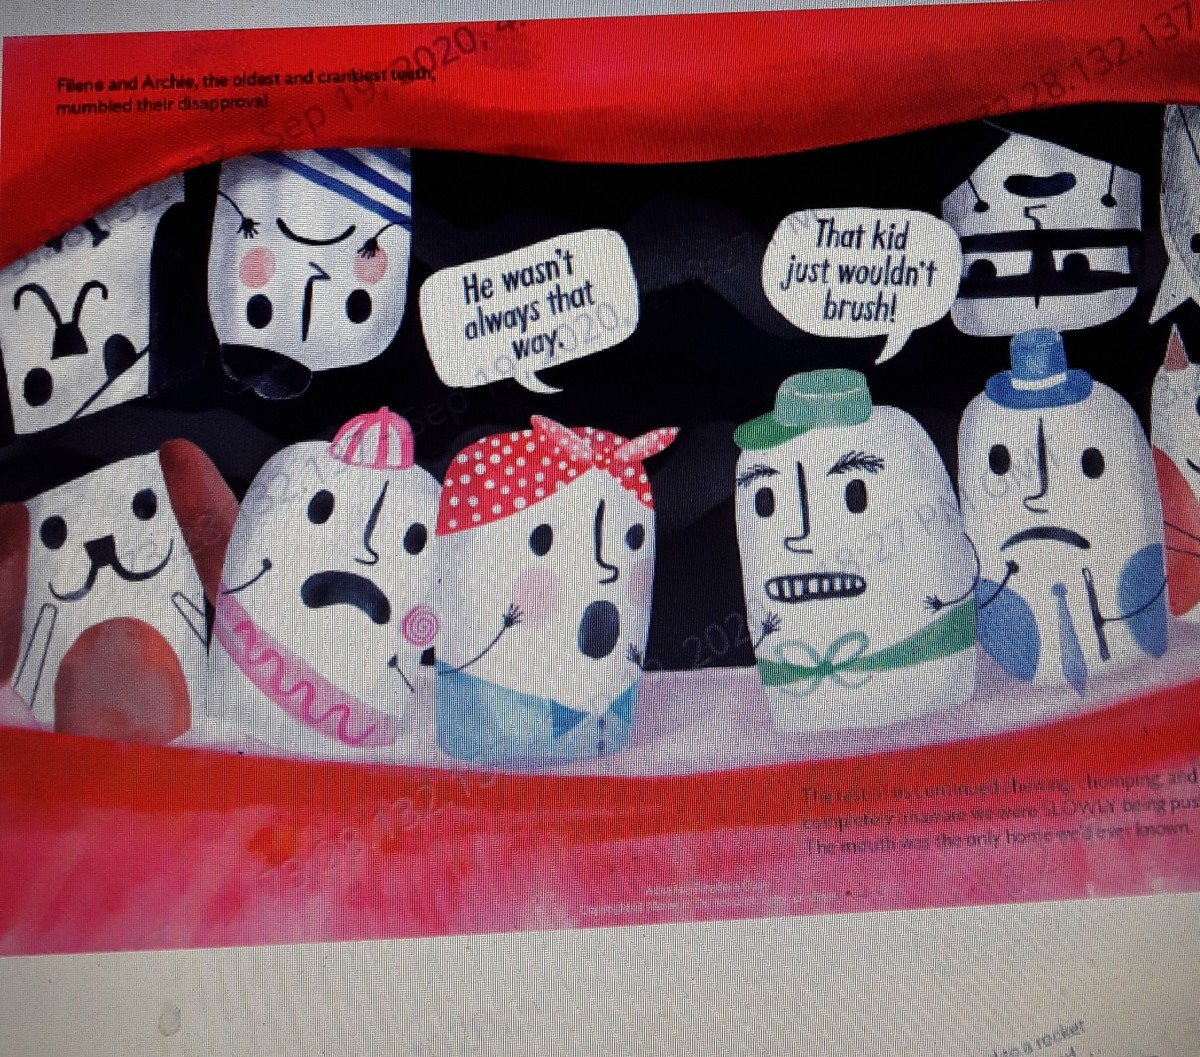 a-baby-tooths-fear-of-falling-out-in-creative-picture-book-teaches-life-lesson-that-new-events-can-be-happy